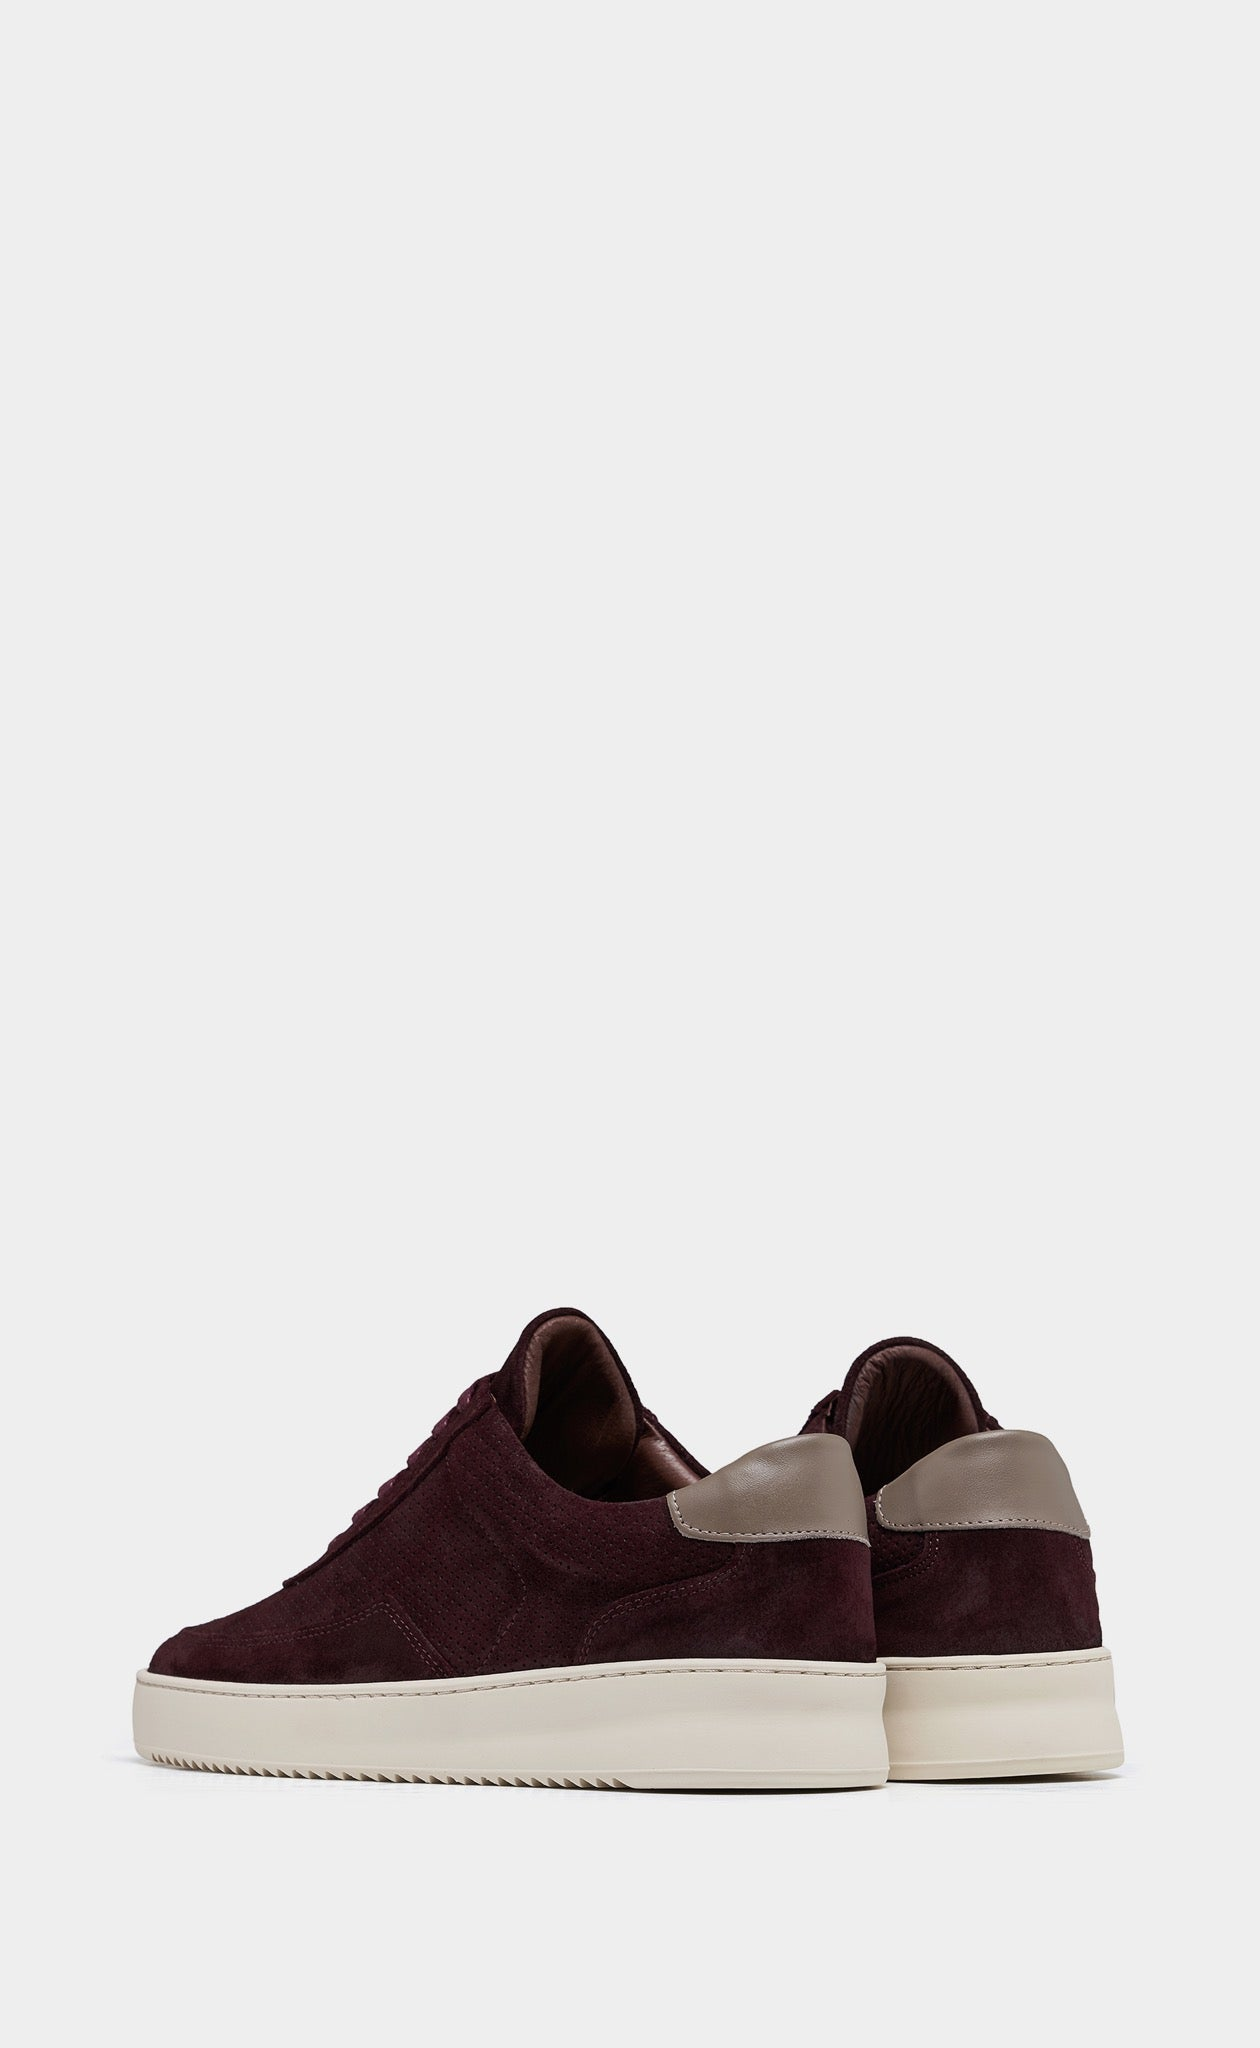 Low Mondo Ripple Suede Perforated Ox Blood